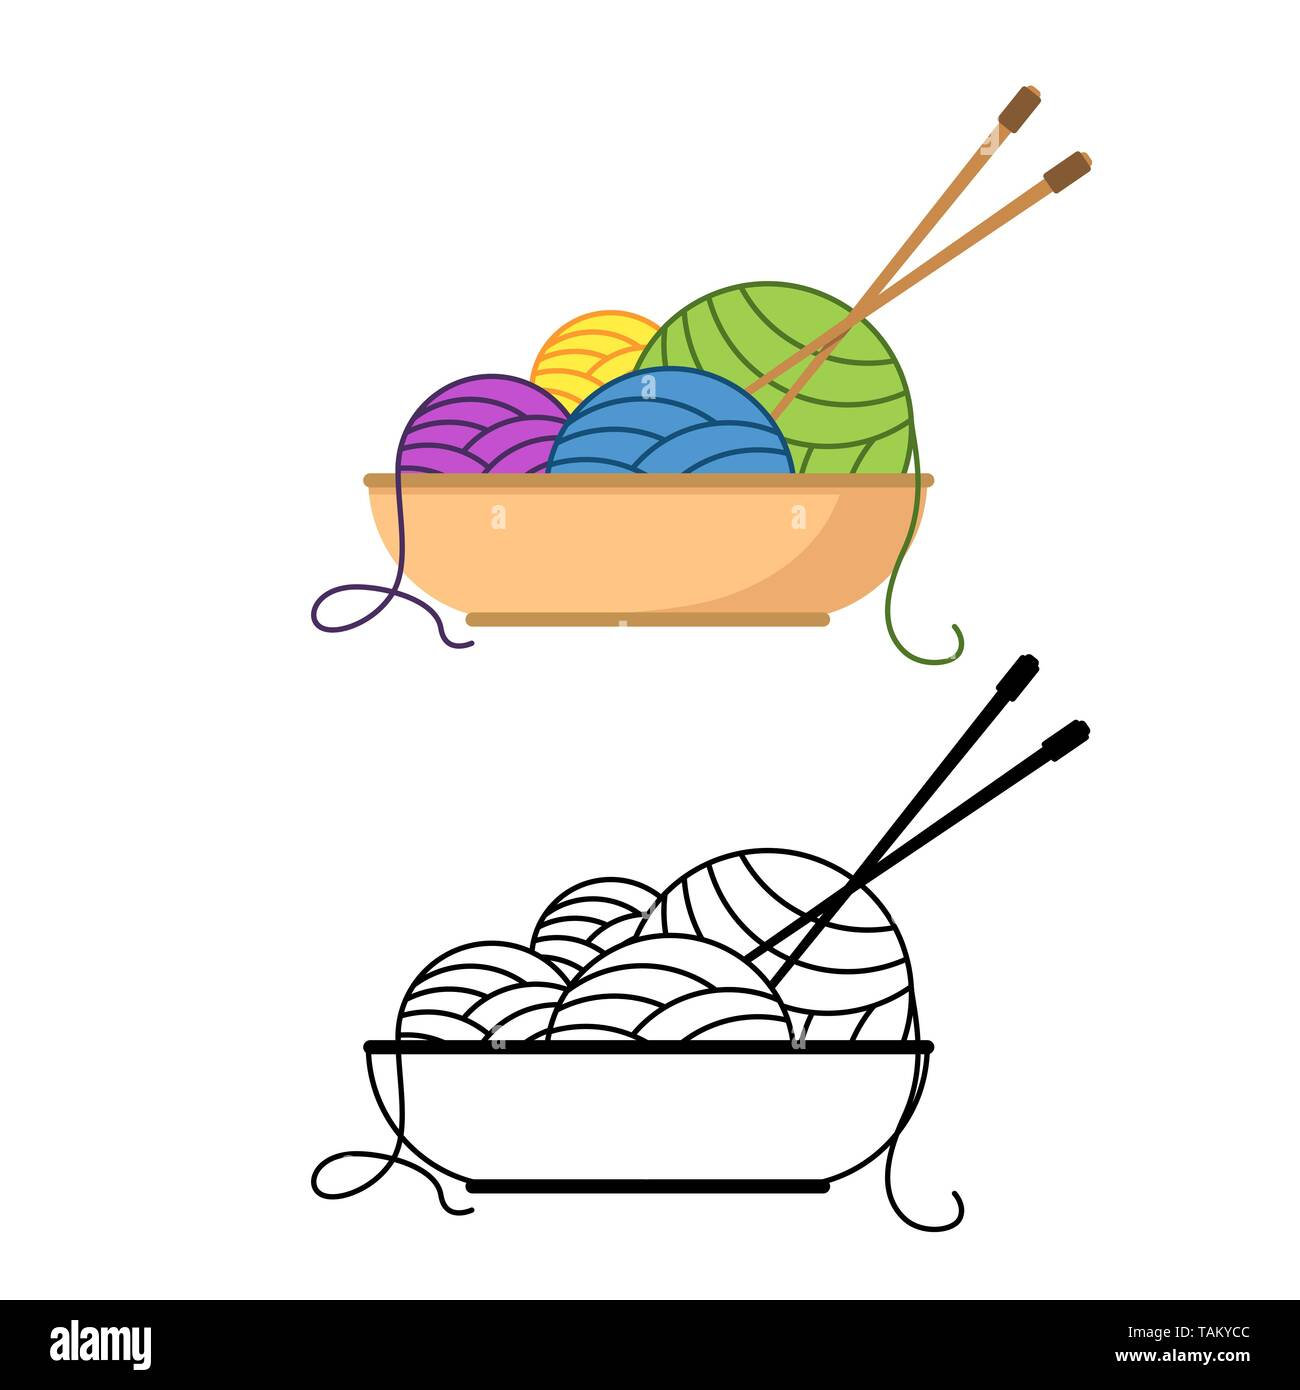 Multicolored balls of yarn lie in a bowl with knitting needles Vector illustration - Stock Vector